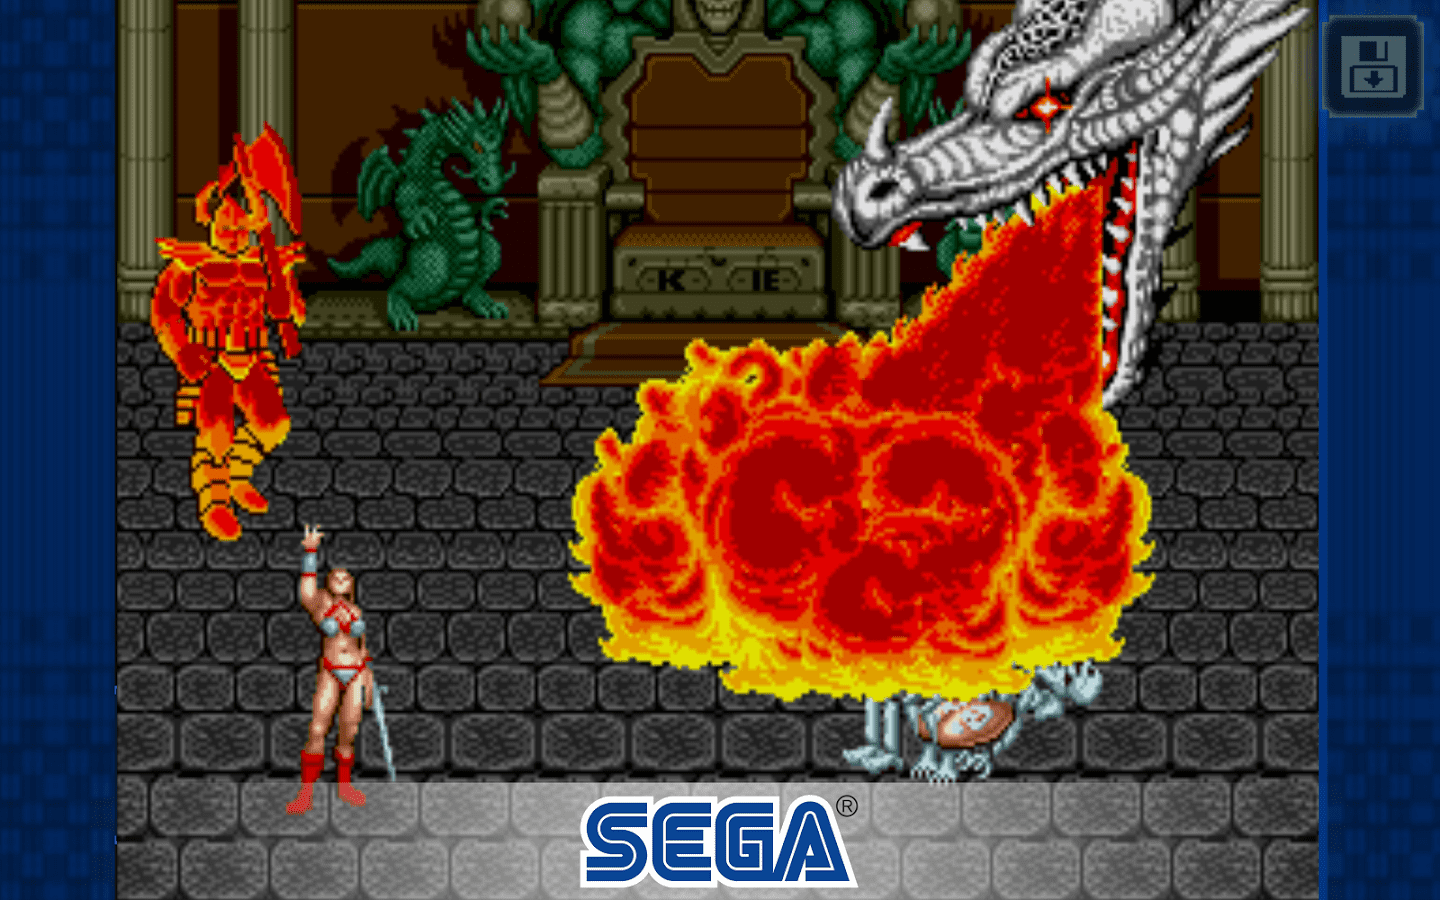 3 x1 in SEGA free games: Golden Ax completes the trilogy